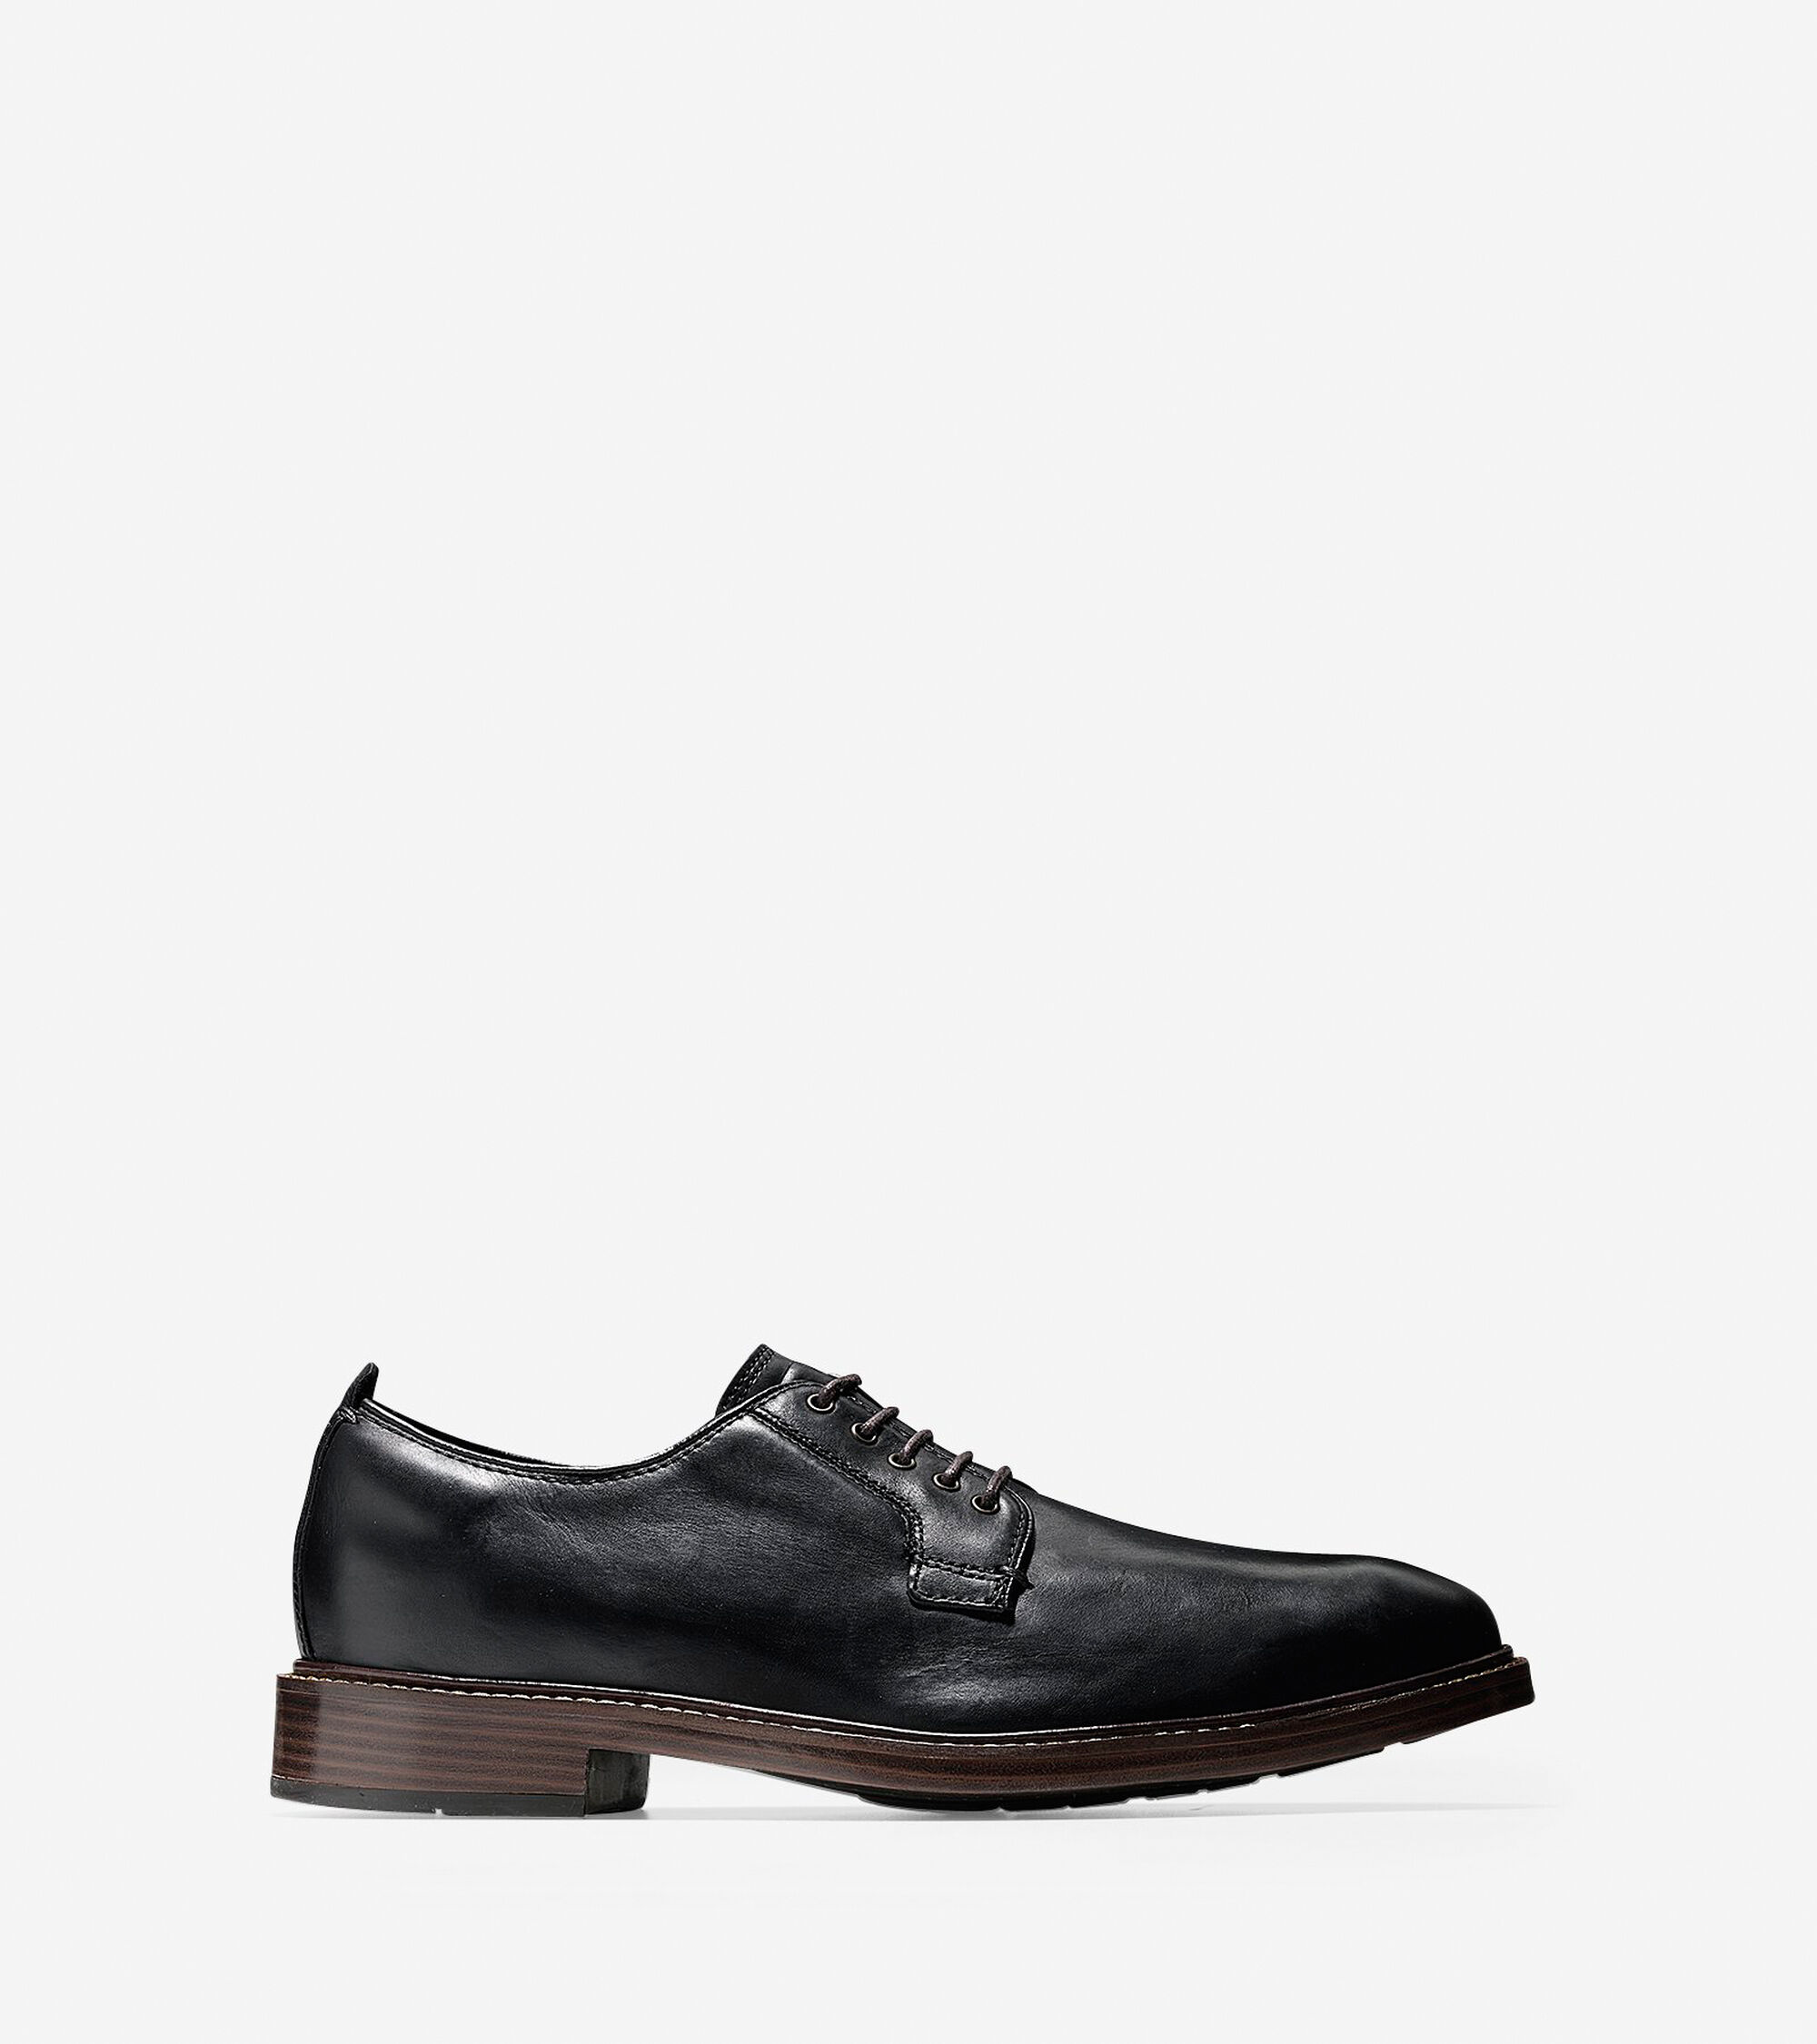 Cole Haan Kennedy Grand Postman Oxford Shoes